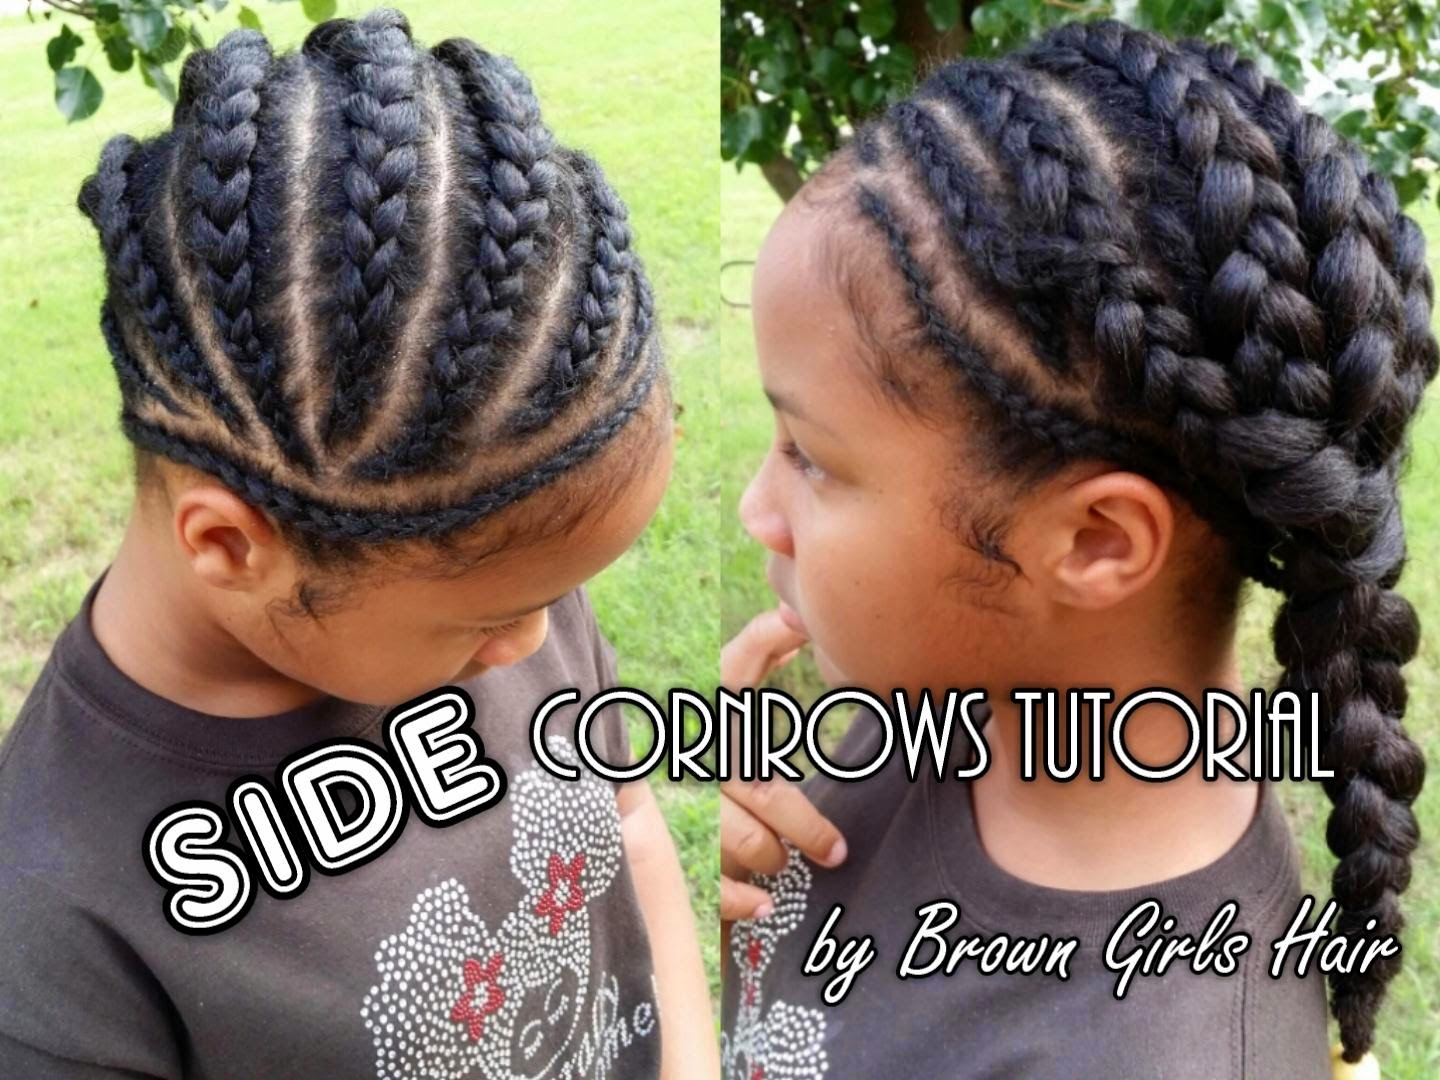 children, cornrows, natural hairstyles for girls, blog, tutorial, braids for girls, black women haircare